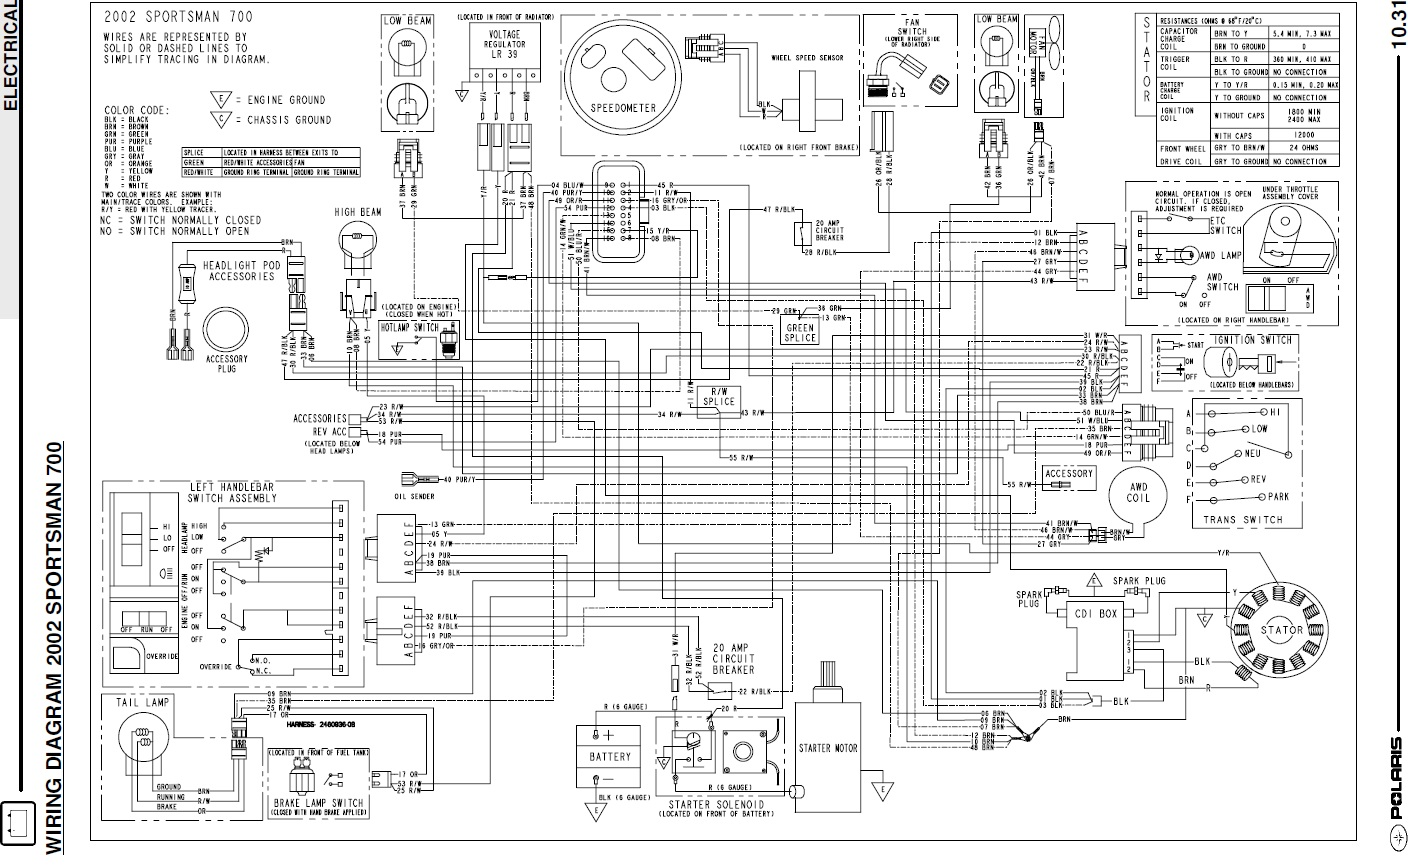 wiring diagram for polaris razr 800 the wiring diagram polaris sportsman schematic polaris printable wiring wiring diagram